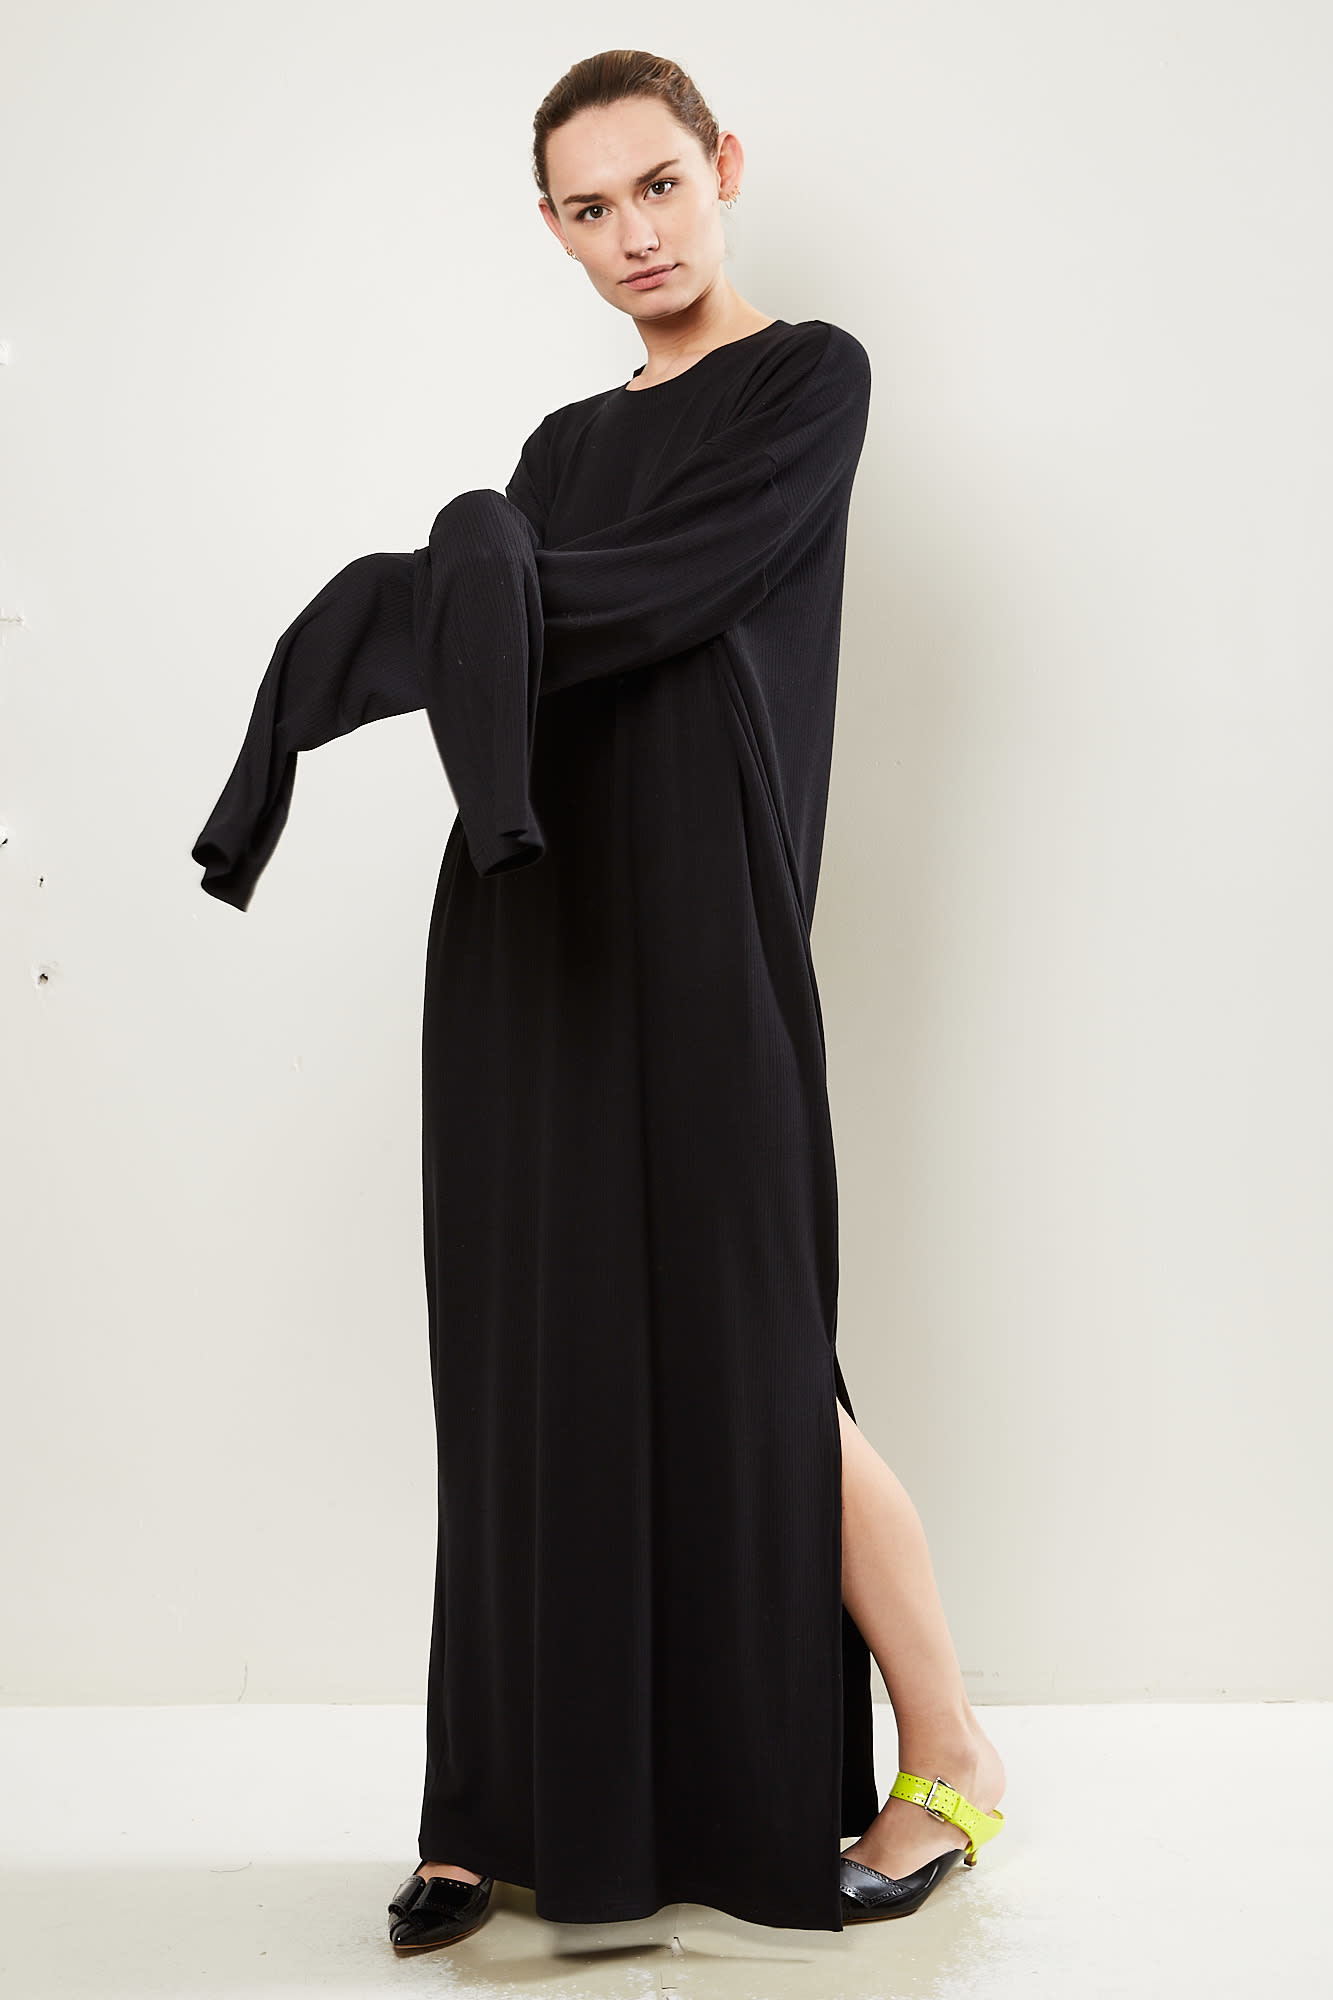 Monique van Heist Lol split rib dress